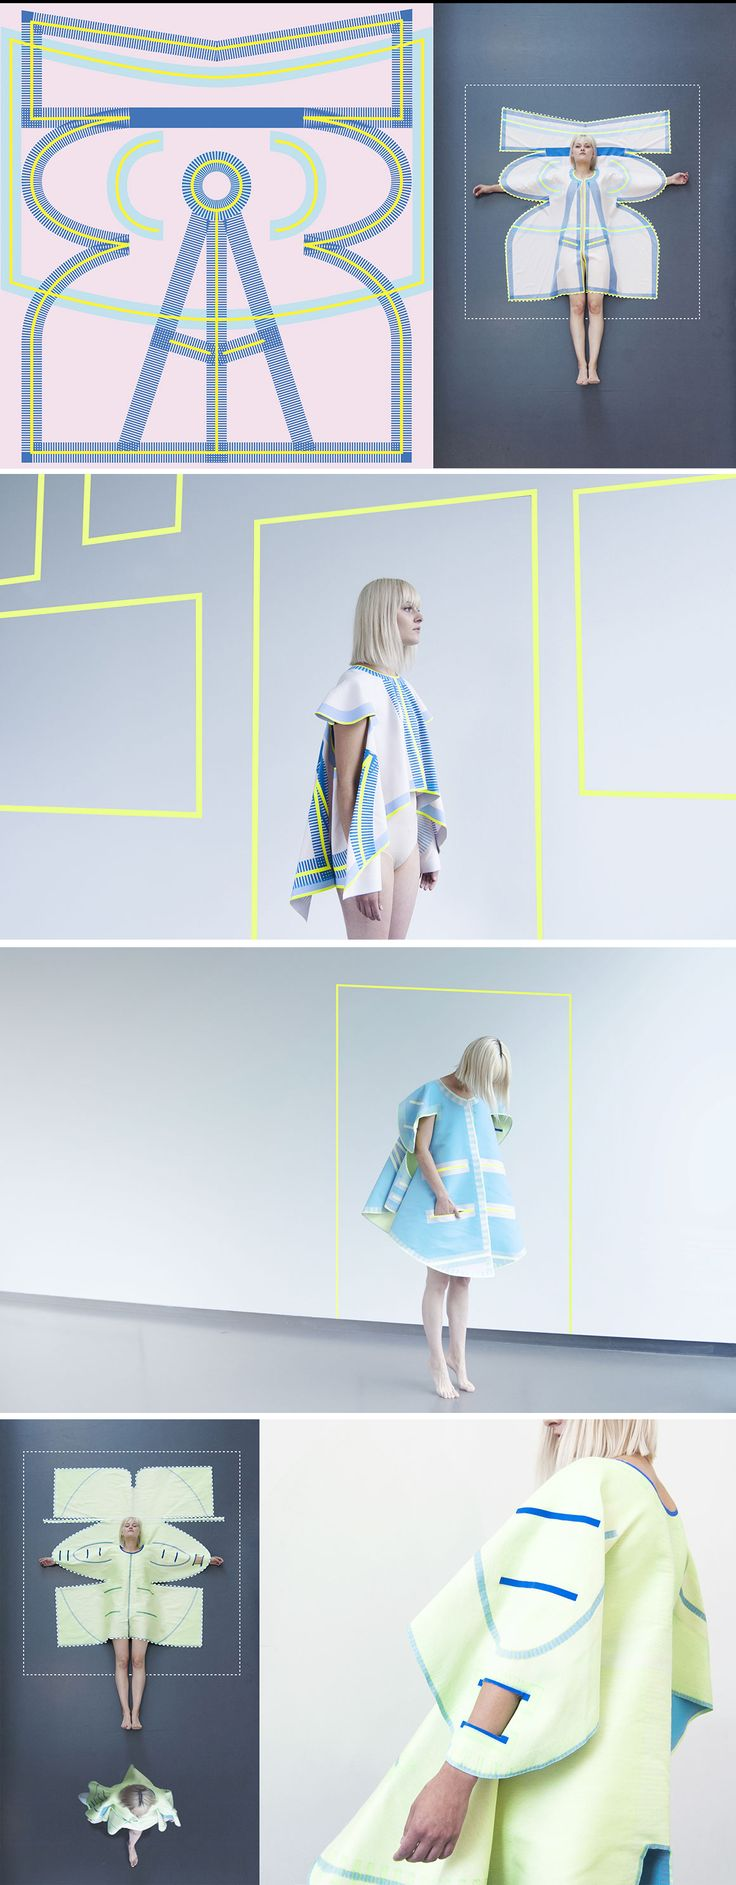 Vera De Pont's Pop Up Clothing Is Assembled Without Stitches.